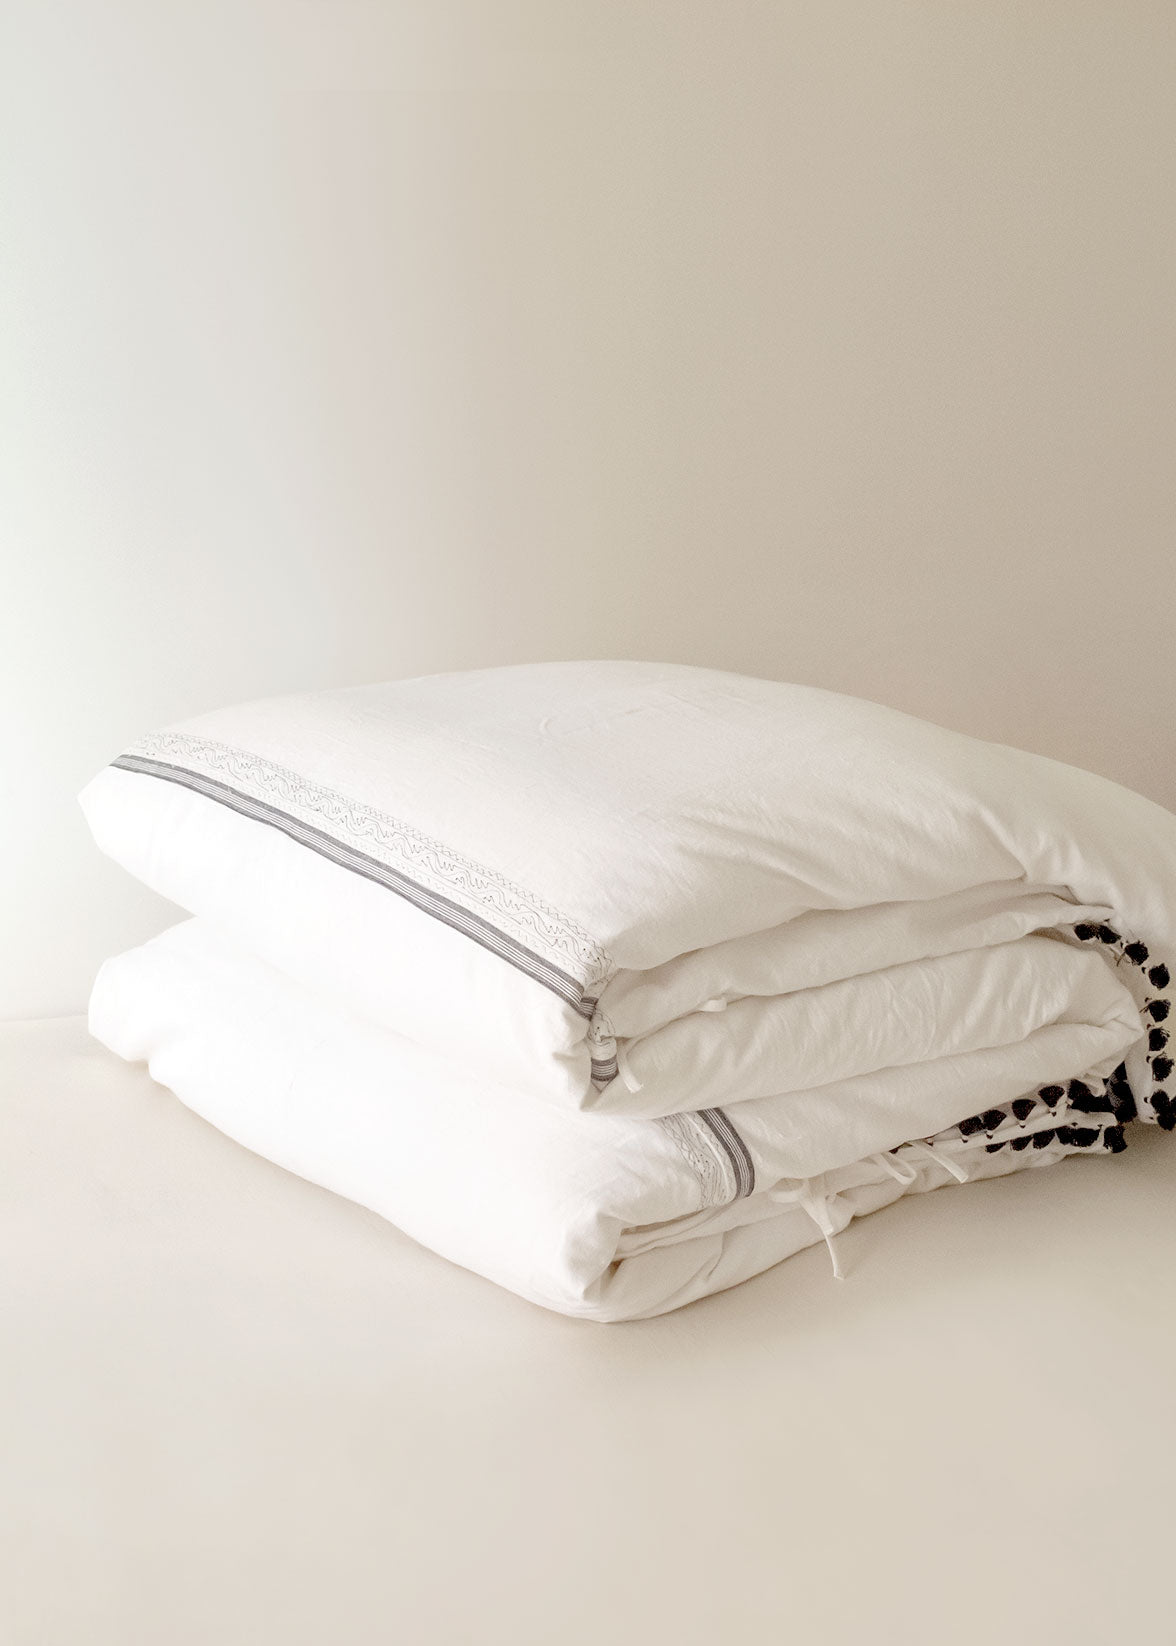 Injiri Handwoven Cotton Duvet Cover